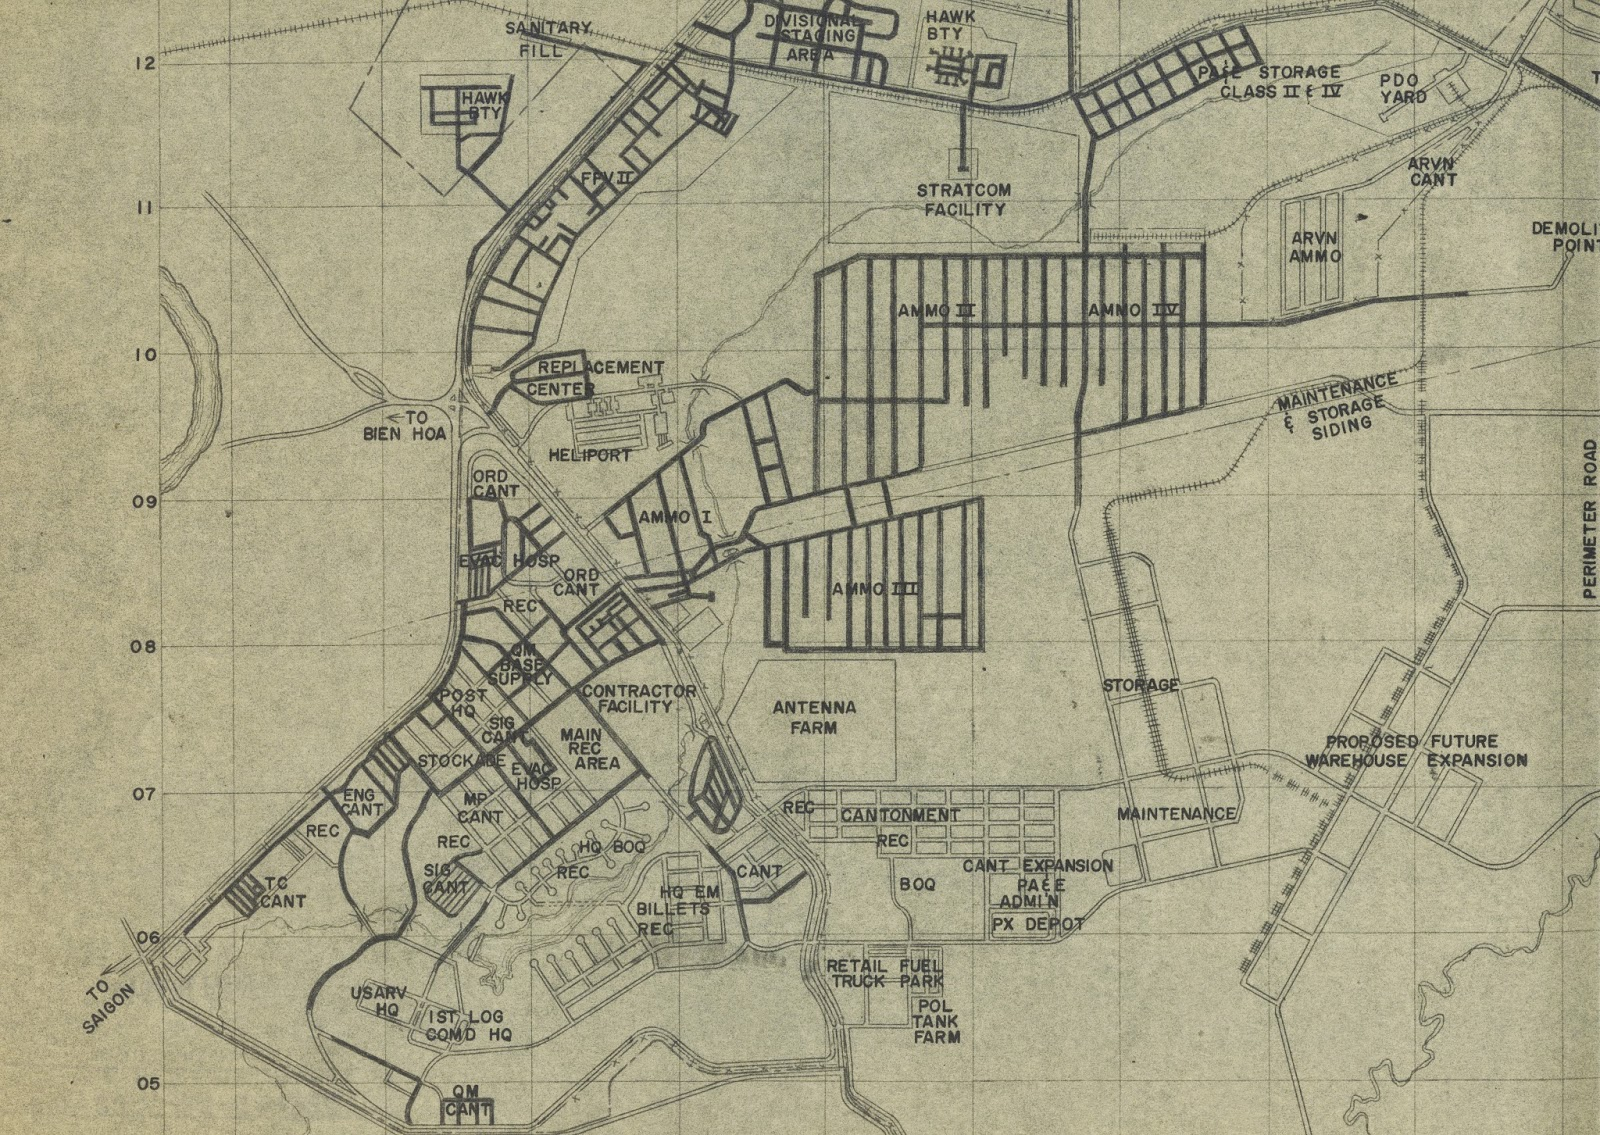 GIS Research and Map Collection Vietnam War Maps from Ball State